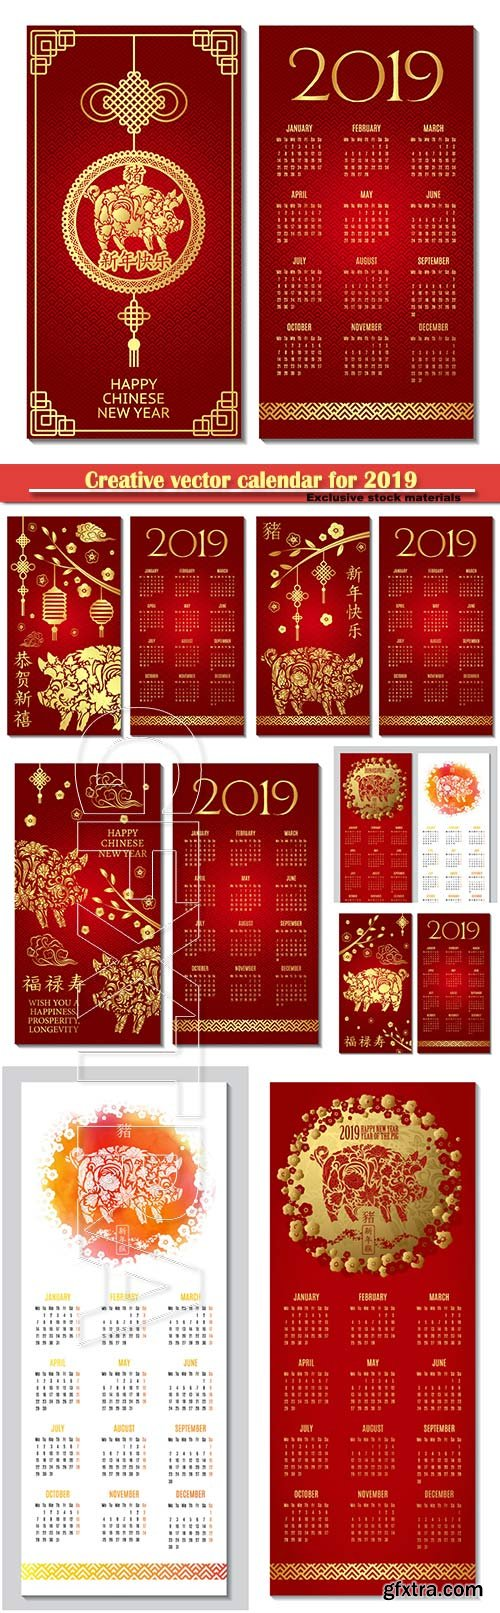 Creative vector calendar for 2019